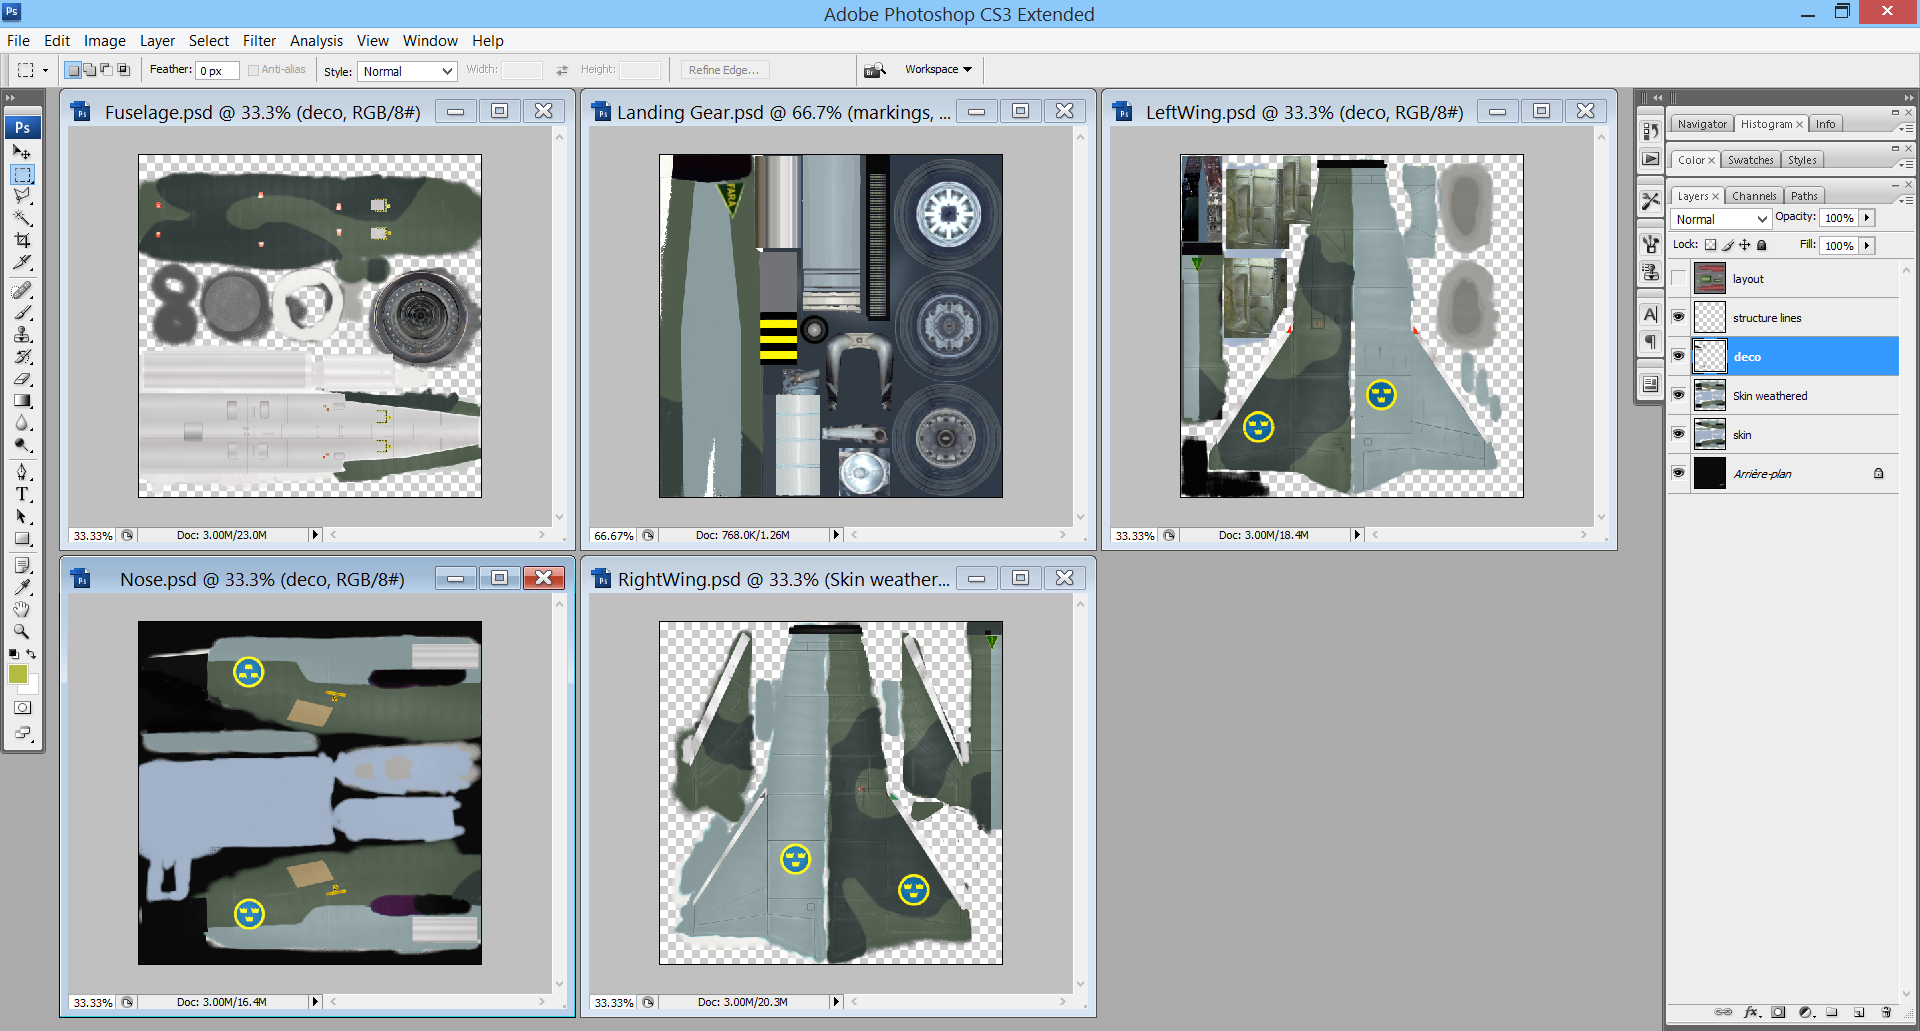 J-35 Draken Template (For Lud von Pipper / BPAO's J-35) - Re-Upload